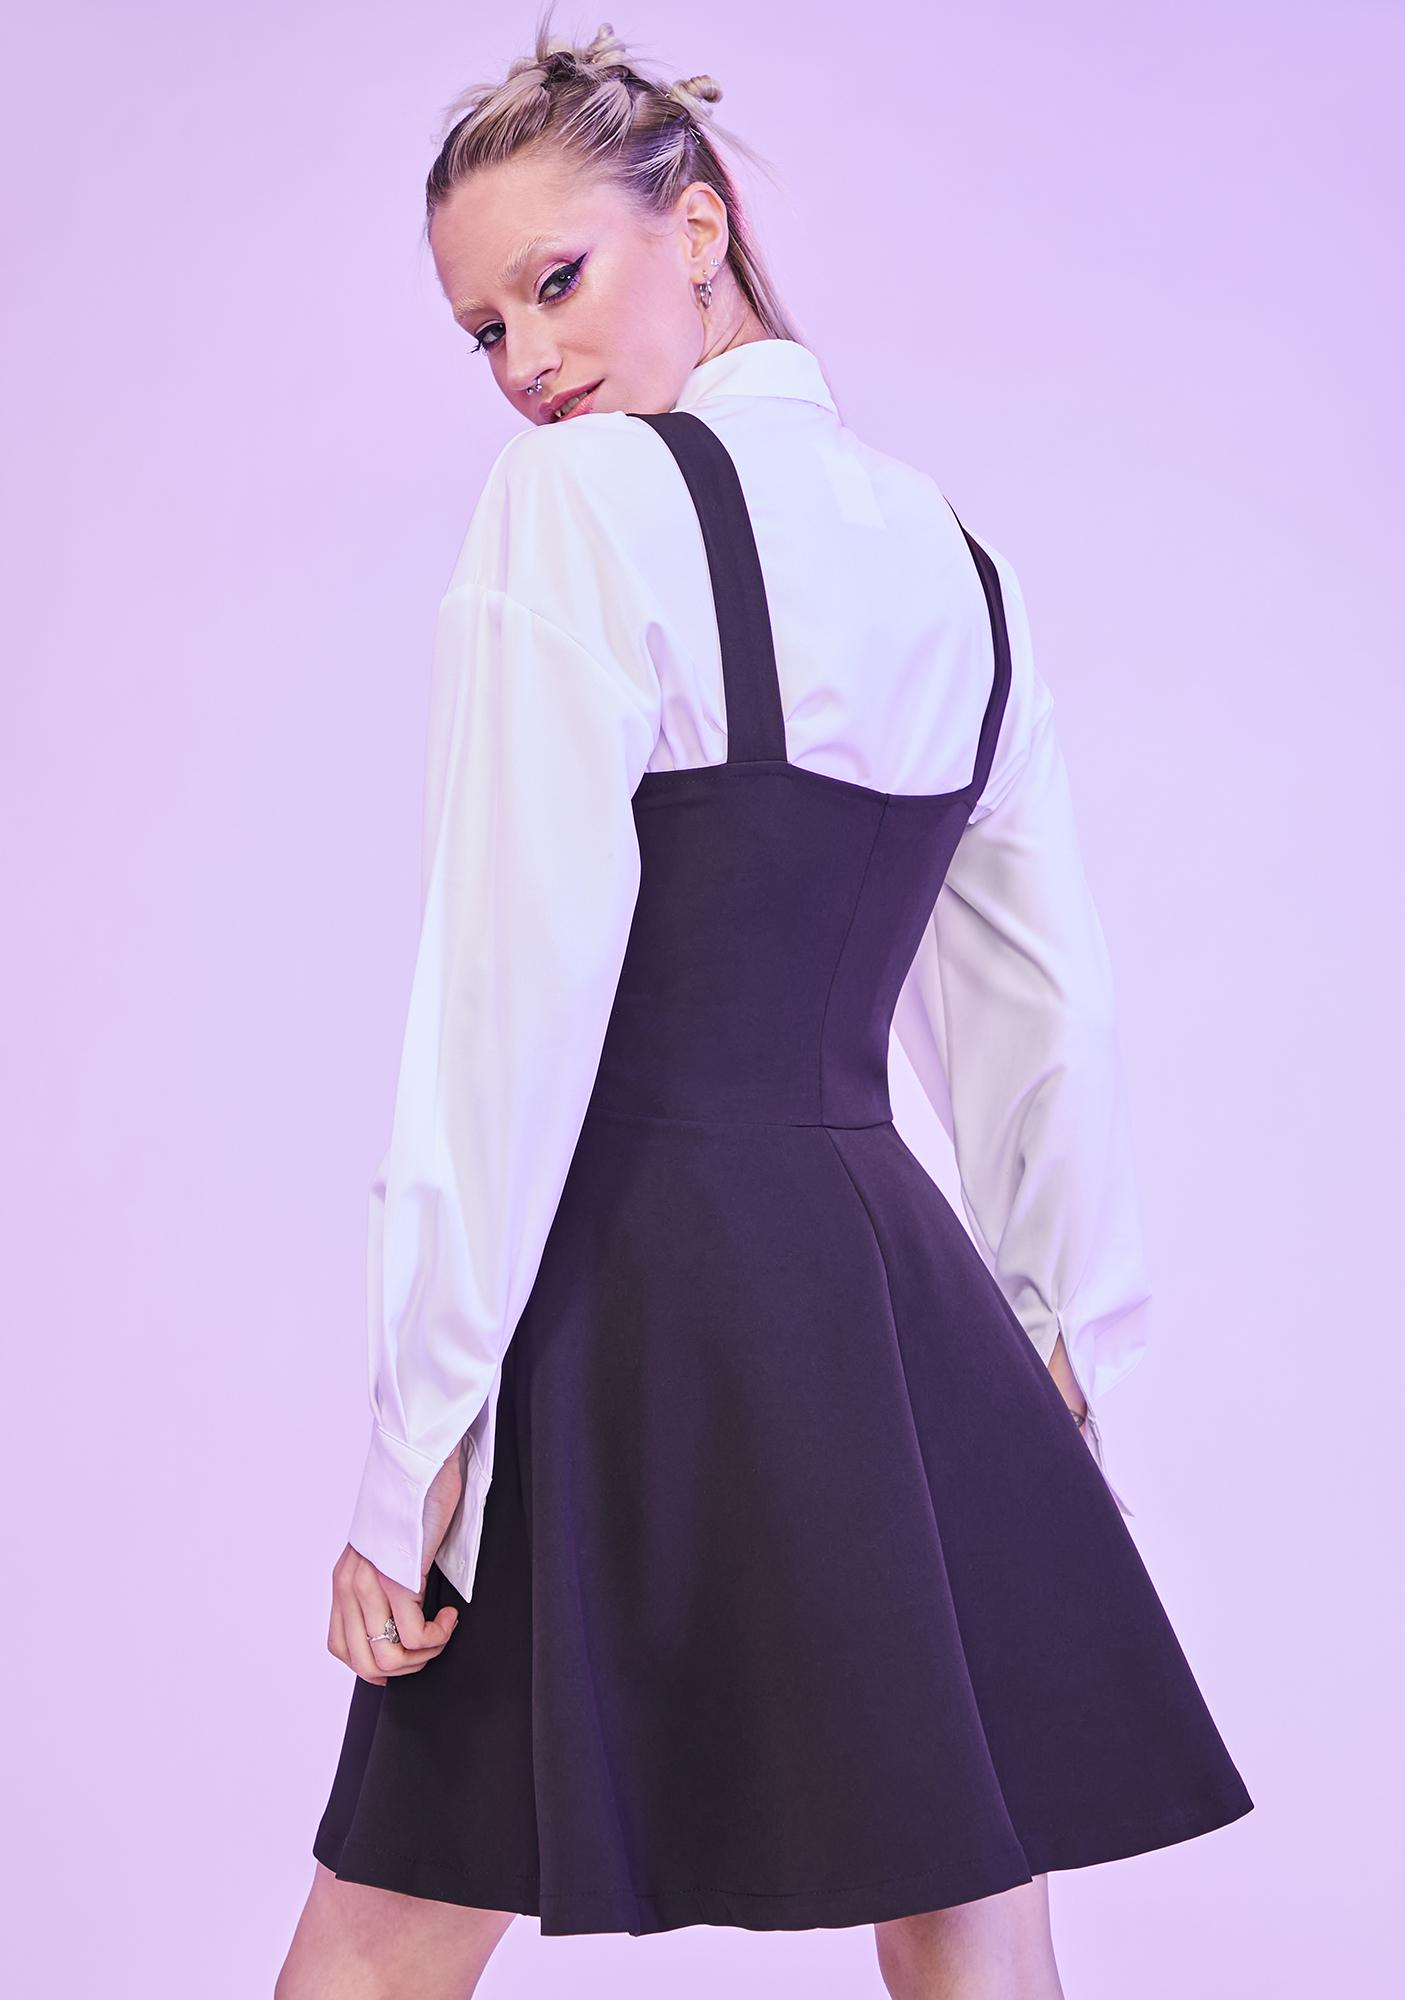 What's Your Fascination Harness Dress